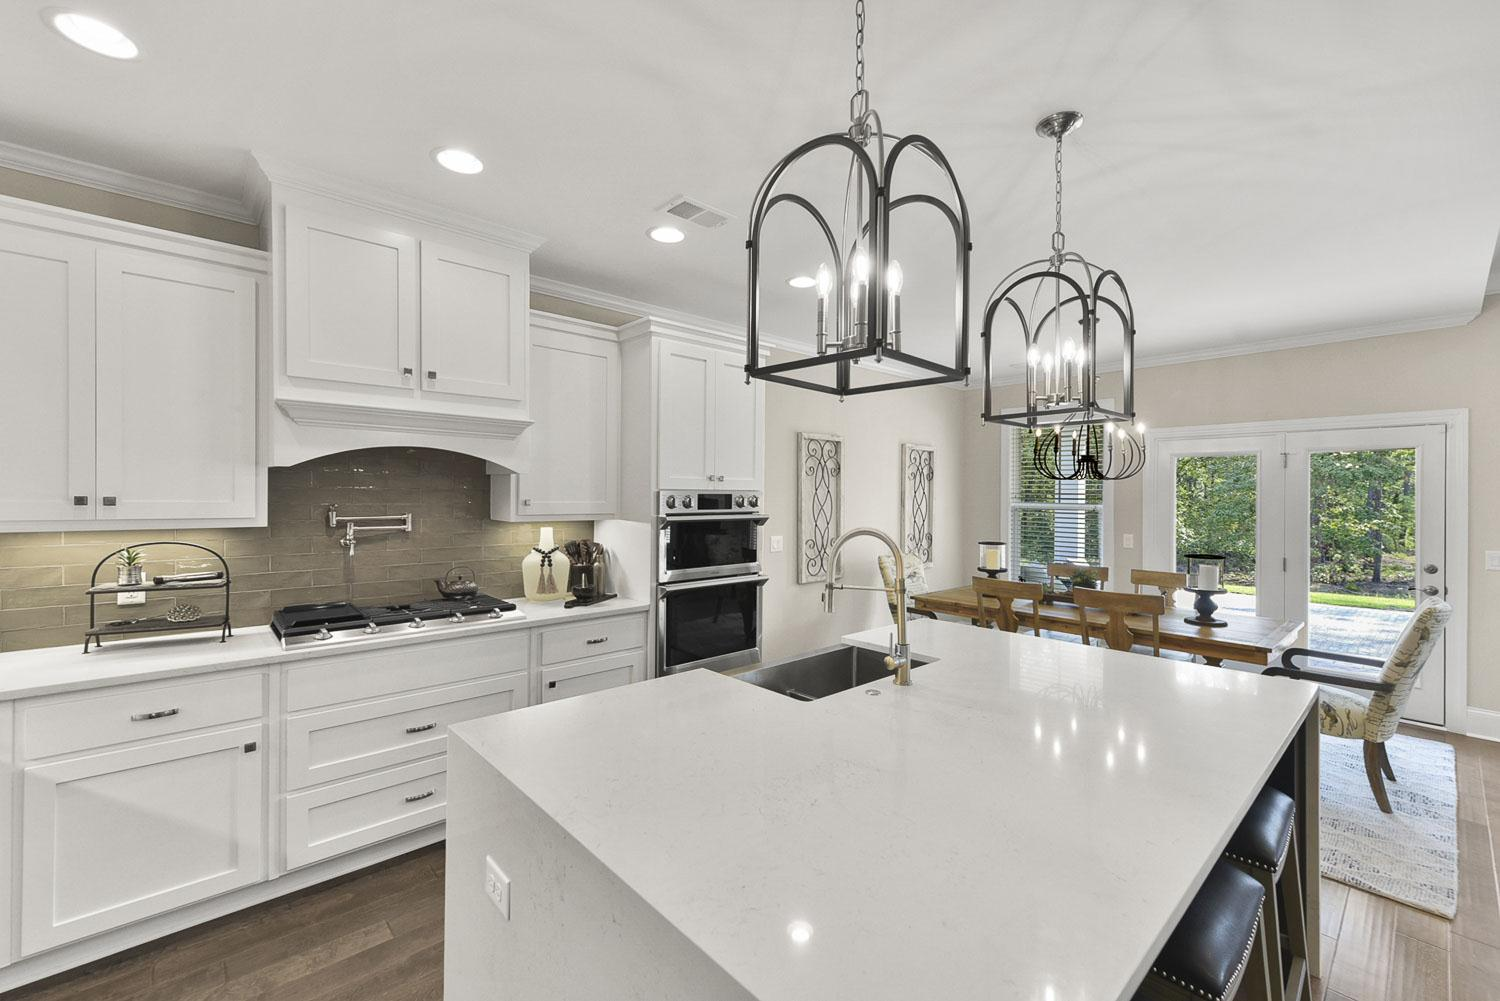 Kitchen featured in the Northwood Villas-Sawgrass III By Executive Construction Homes